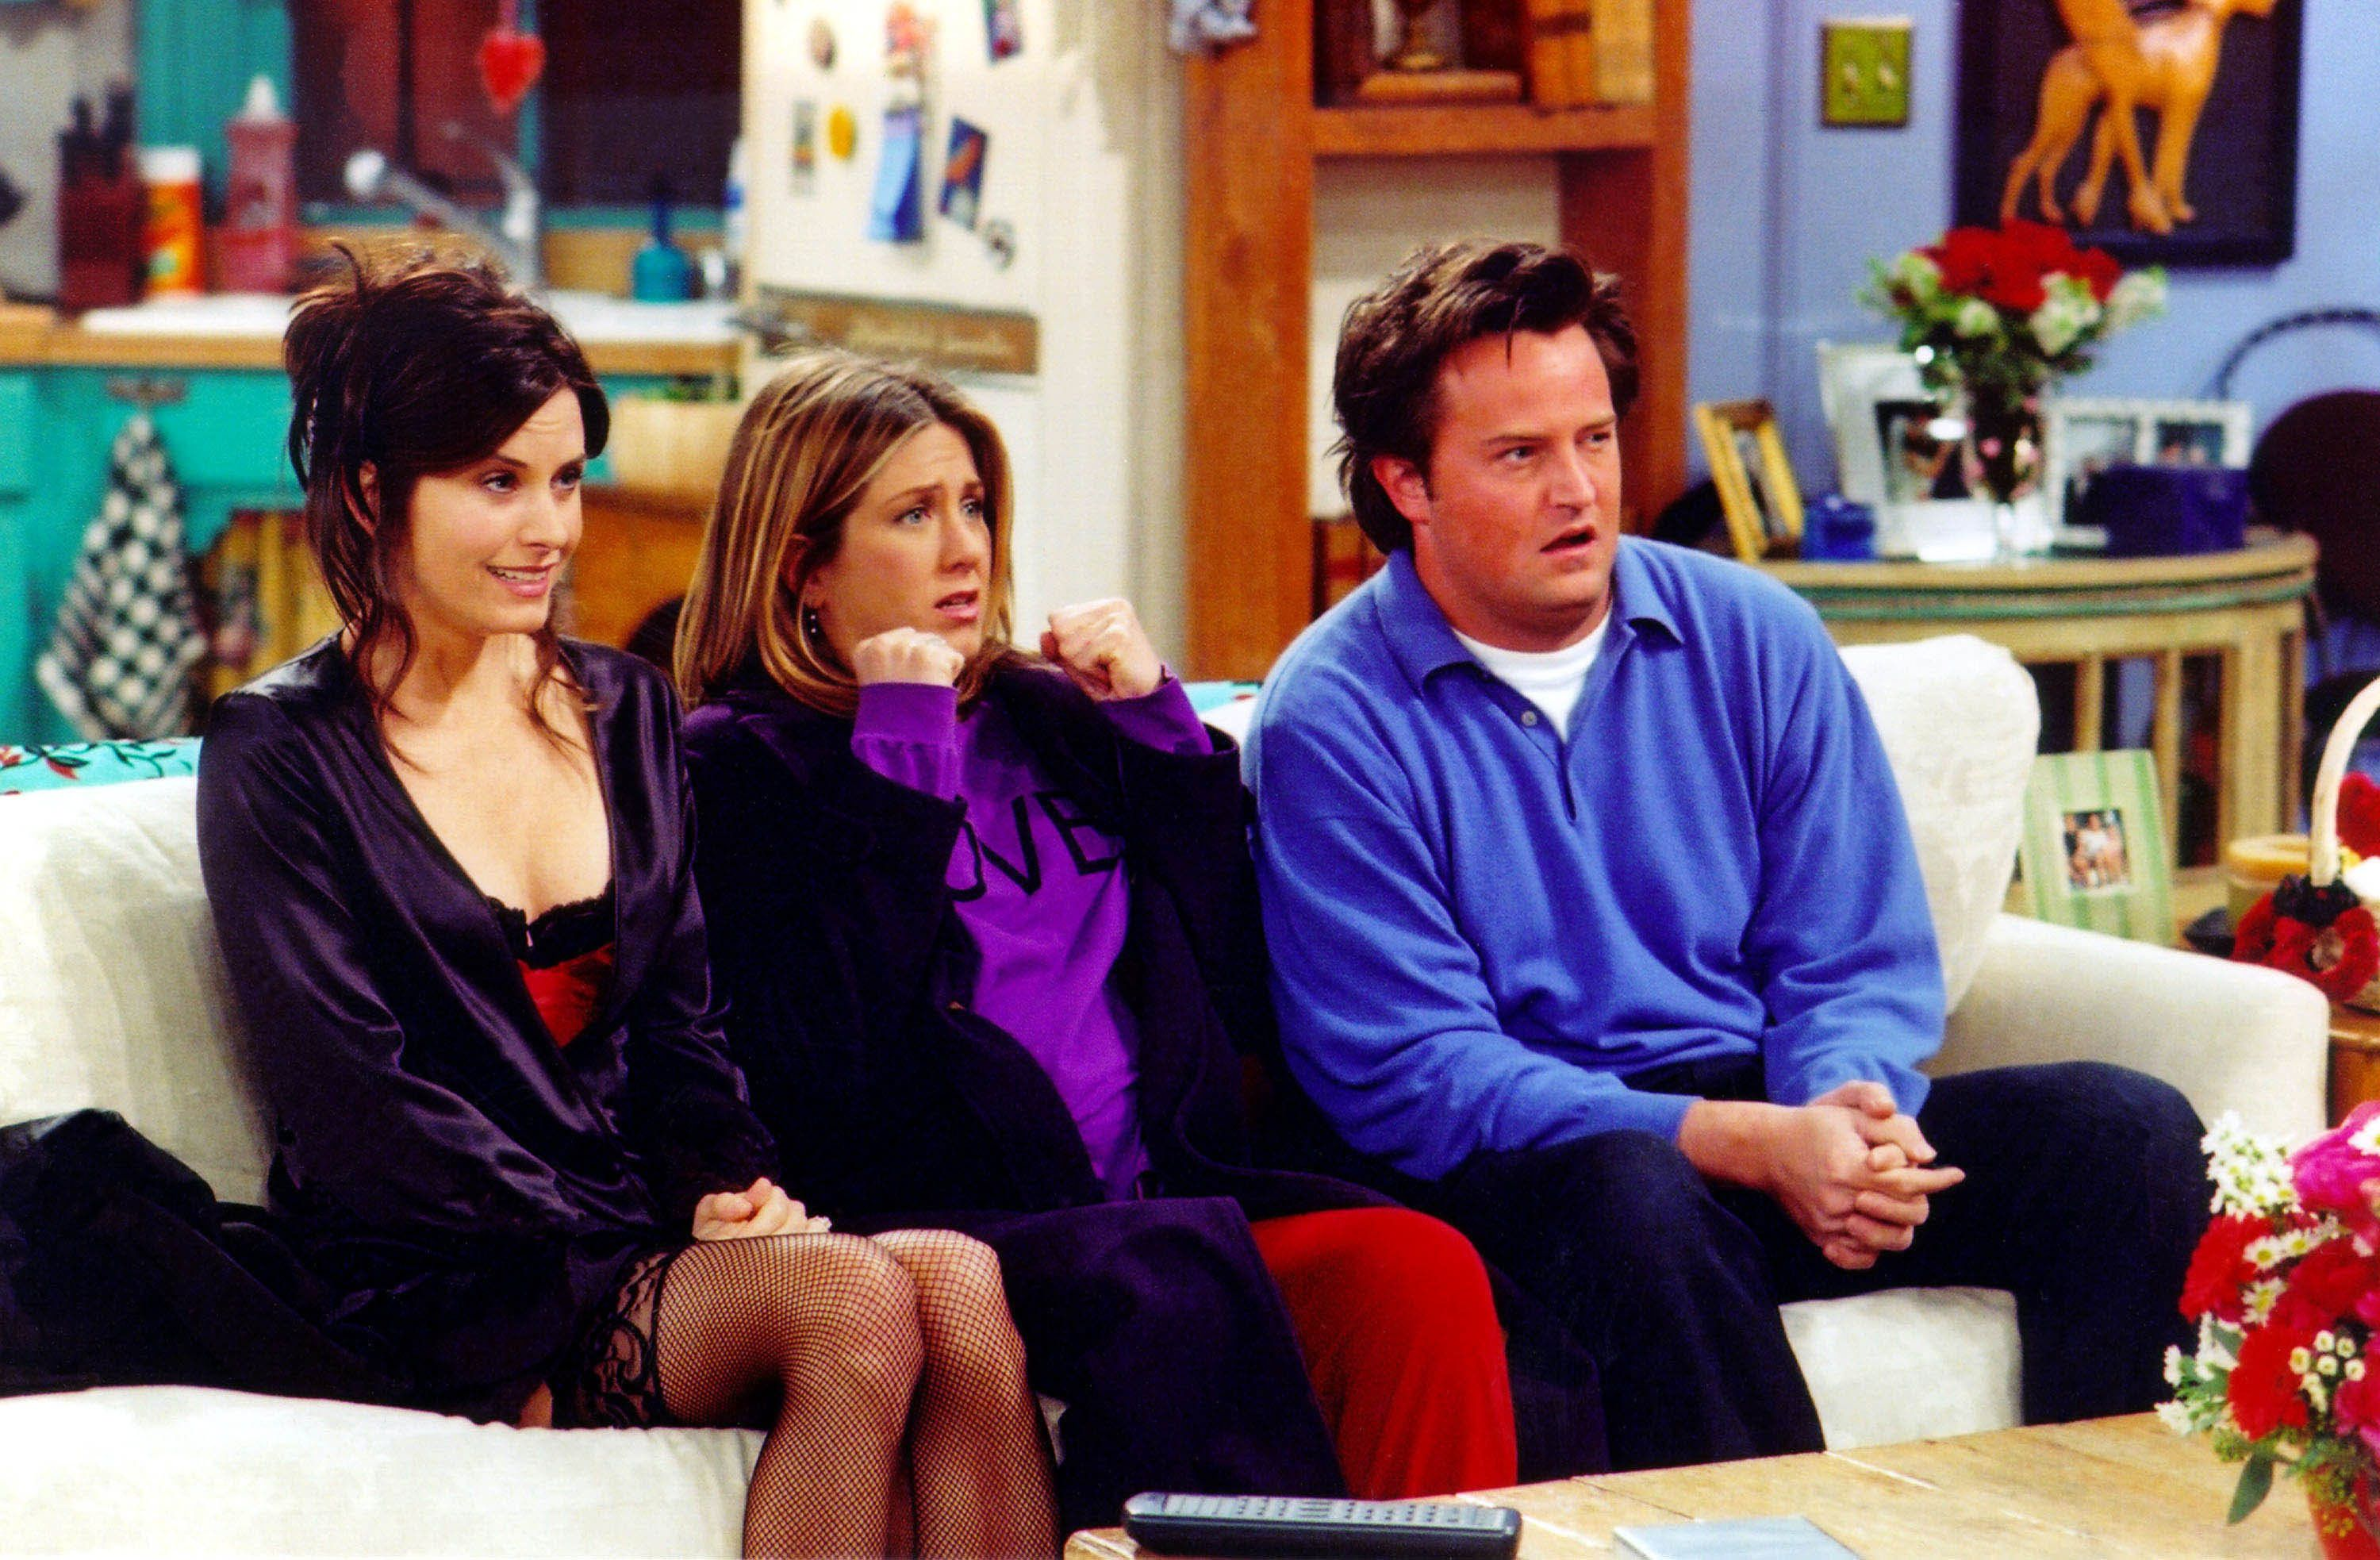 UNDATED PHOTO:  Actors Courteney Cox Arquette (L), Jennifer Aniston (C) and Matthew Perry are shown in a scene from the NBC series 'Friends'. The series received 11 Emmy nominations, including outstanding comedy series, by the Academy of Television Arts and Sciences July 18, 2002 in Los Angeles, California.  (Photo by Warner Bros. Television/Getty Images)